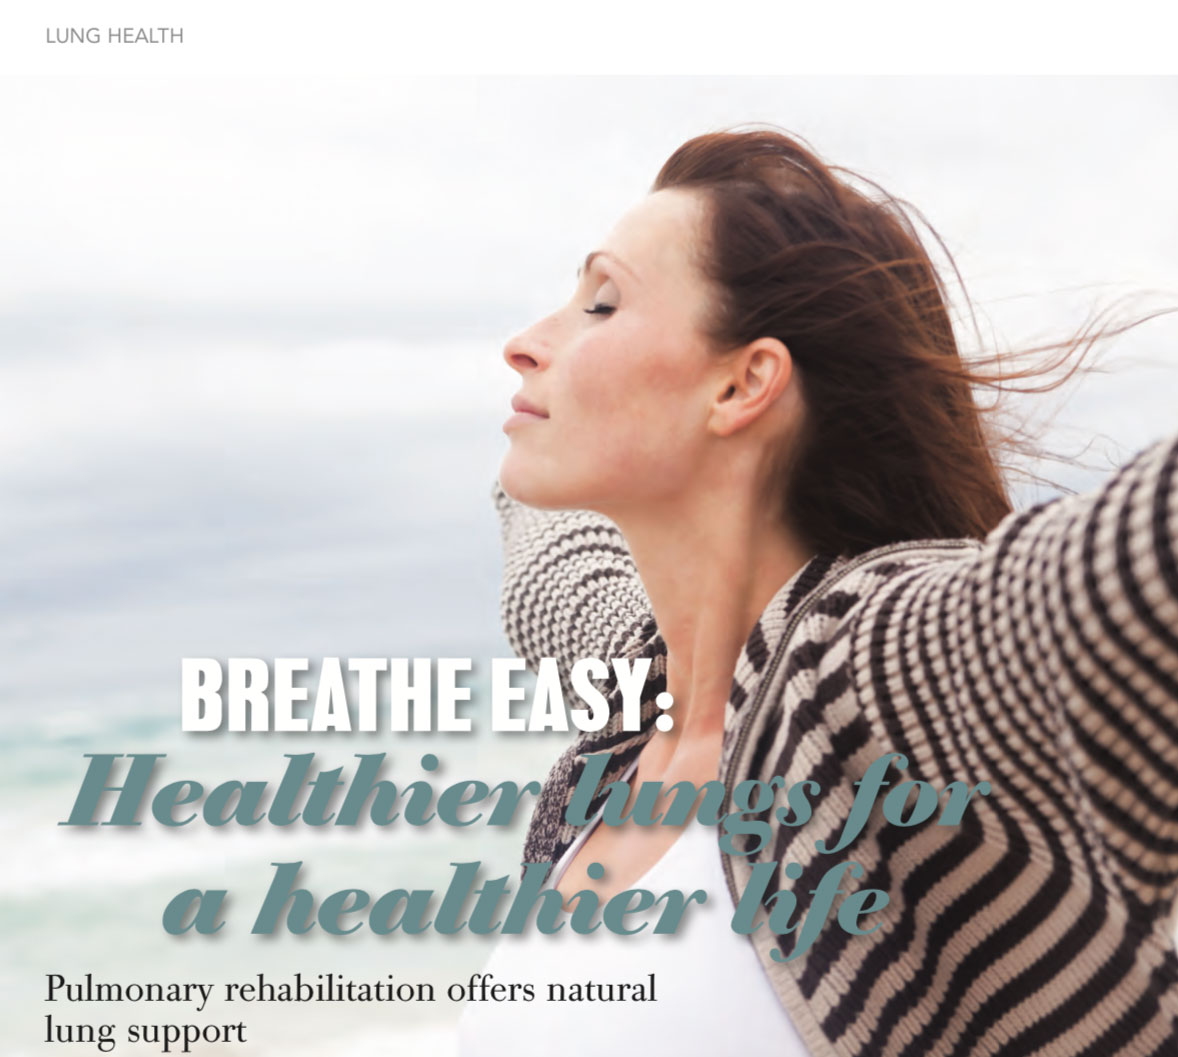 Healthier lungs for a healthier life